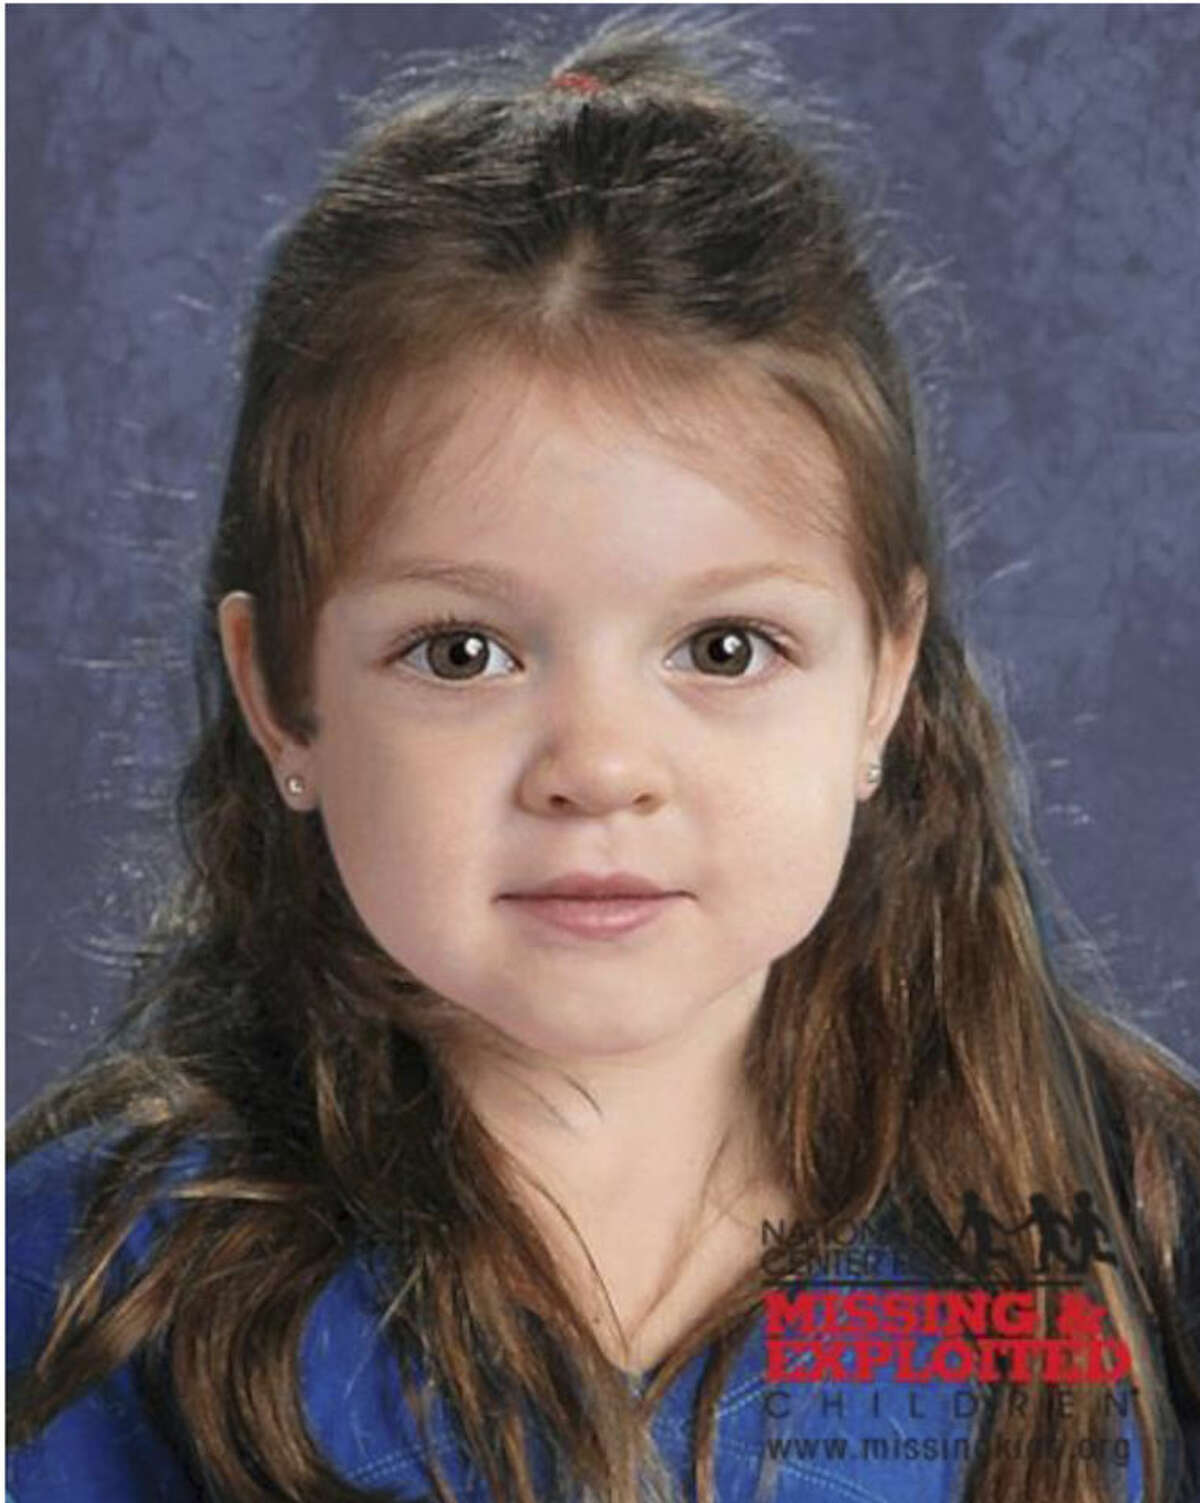 This is the computer-generated composite image that depicted a likeness of the young girl whose body was found on the shore of Deer Island in Boston Harbor on June 25.